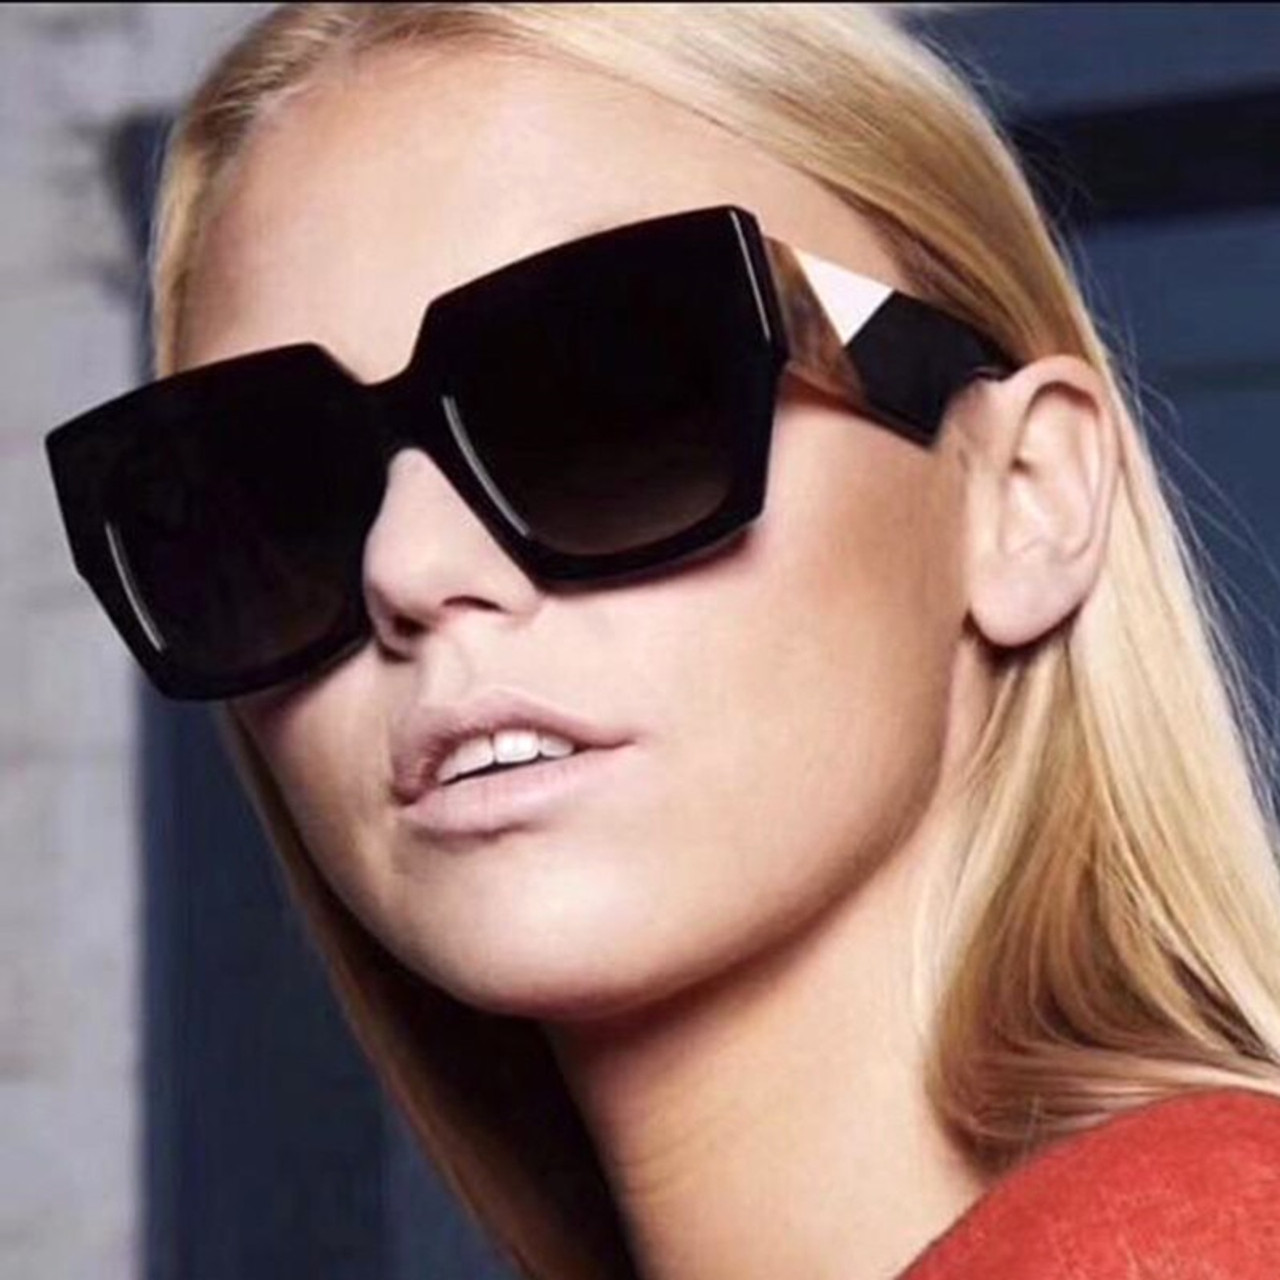 aed8c7b5cacf ... Square Oversized Sunglasses Women Luxury Brand 2019 New Designer  Gradient Sun Glasses Big Frame Vintage Eyewear ...